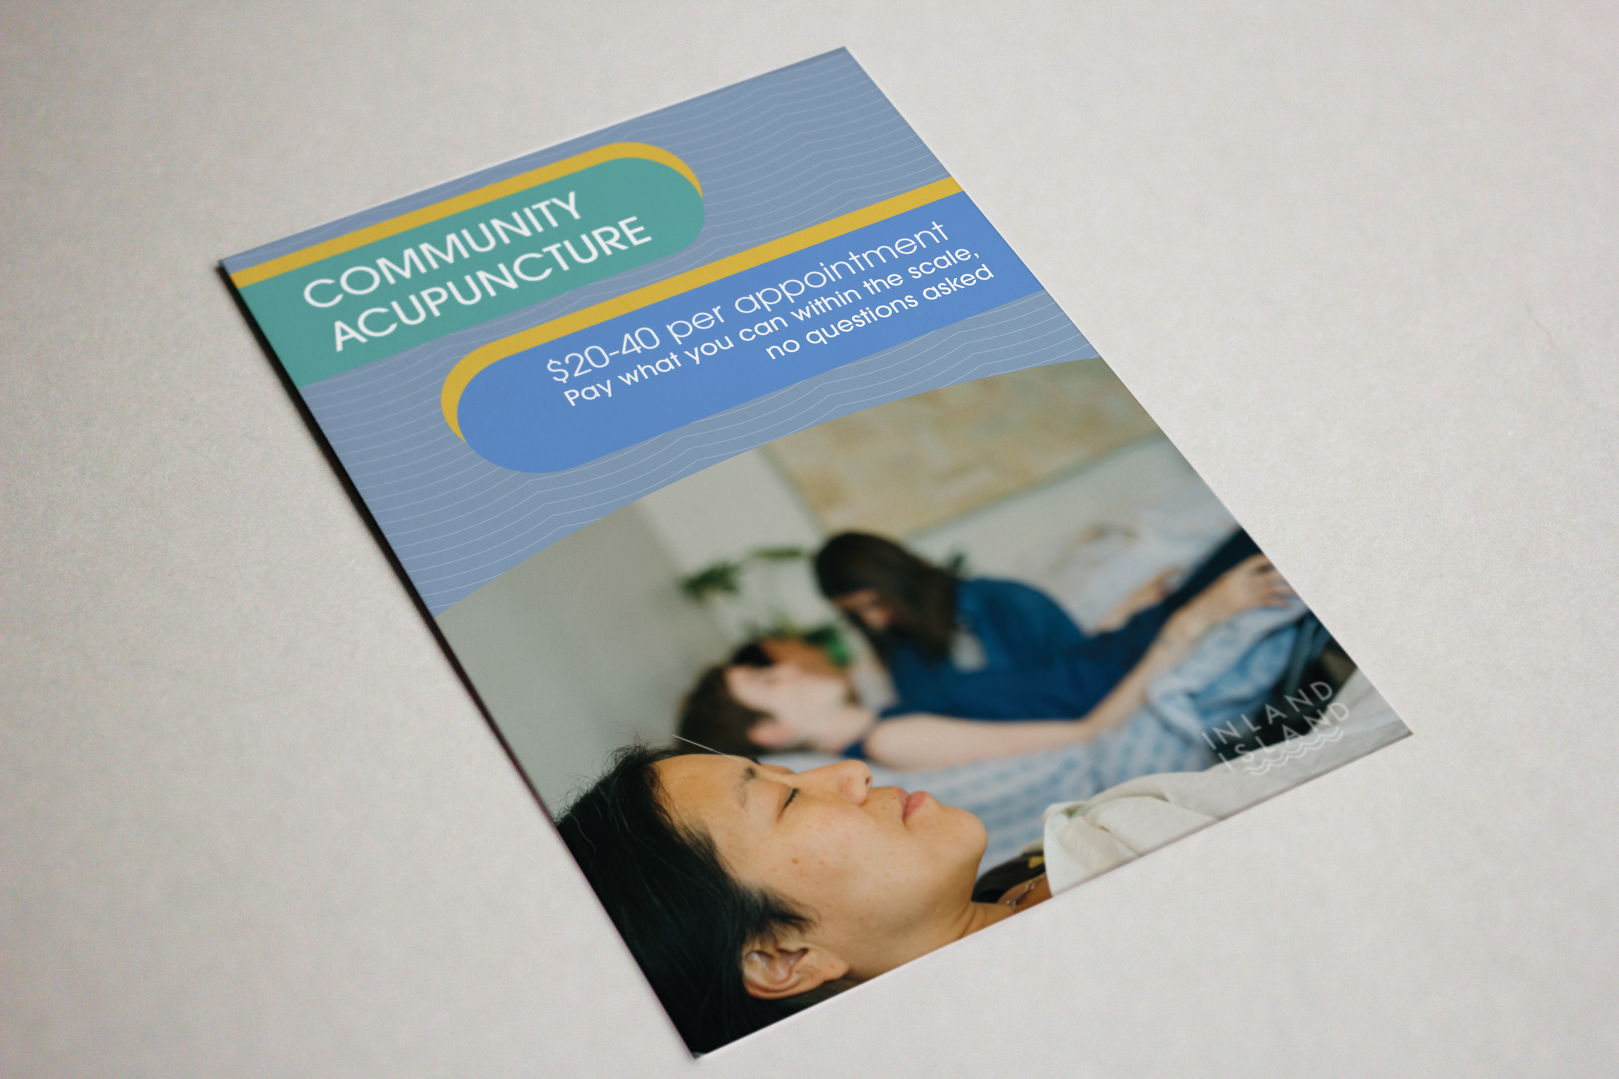 Community Acupuncture Awareness